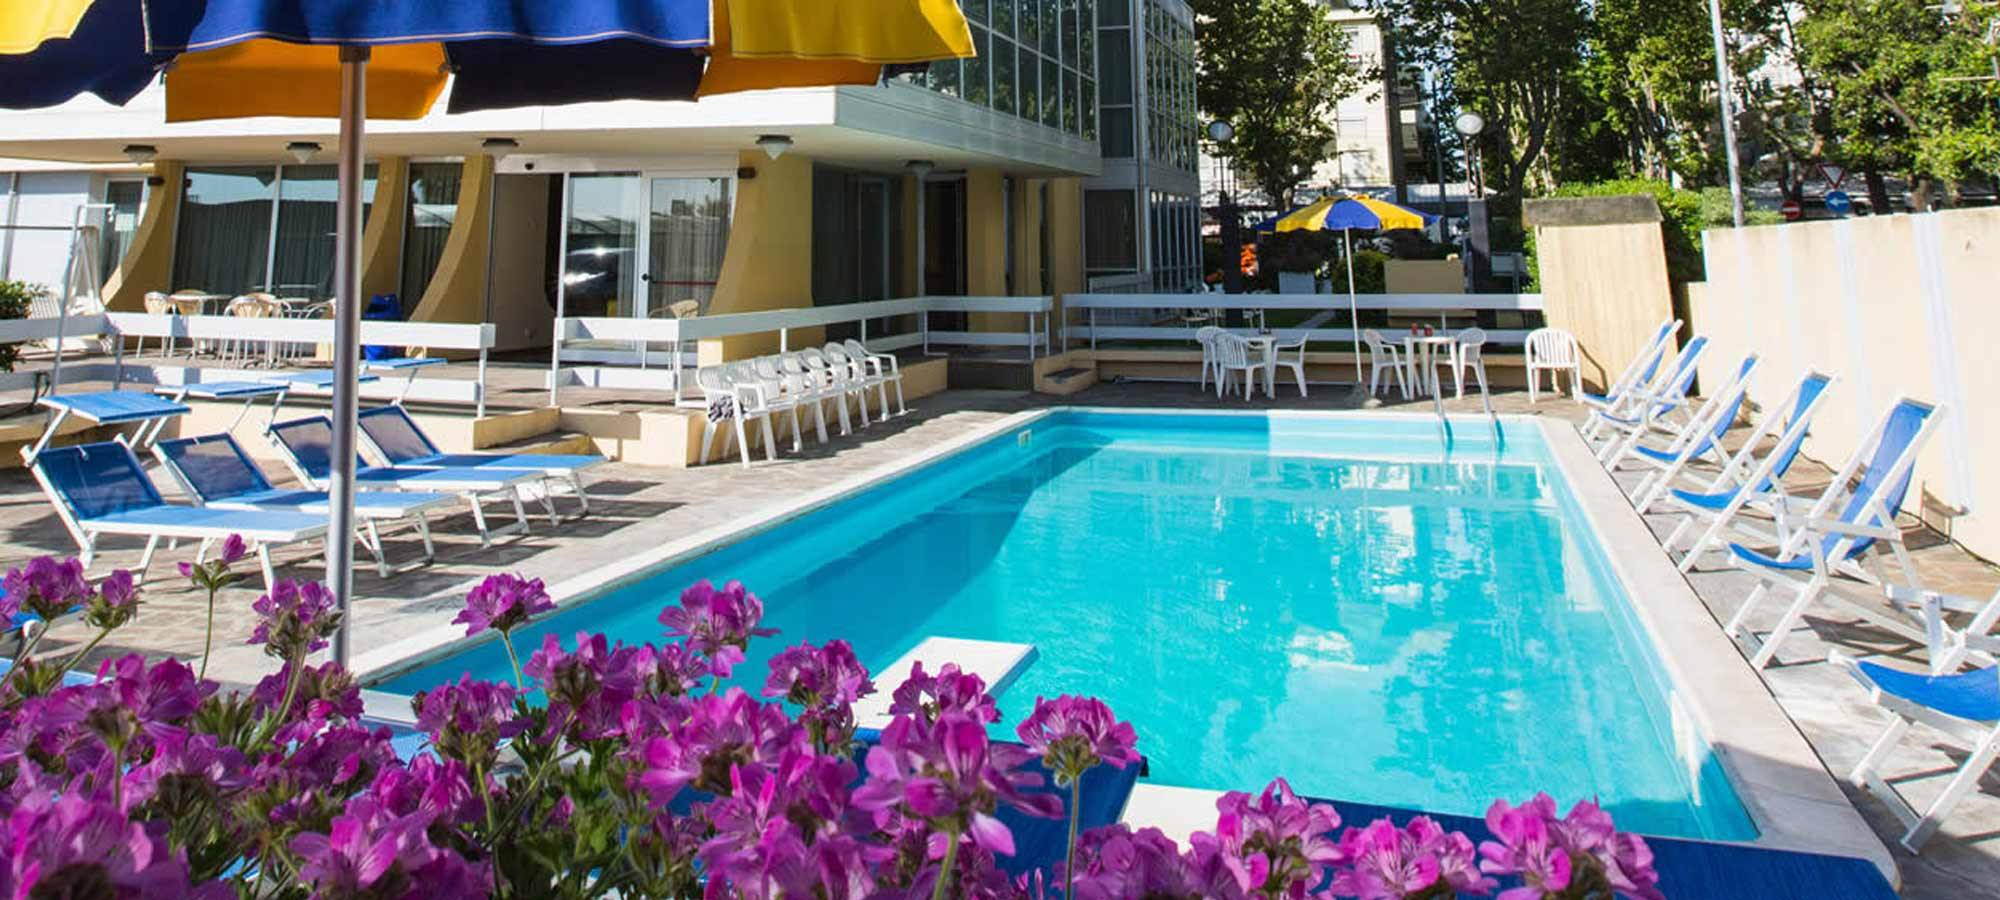 3 Star Superior Hotel Rimini With Pool And Sun Deck Area Surrounded By  Greenery | Hotel Tilmar